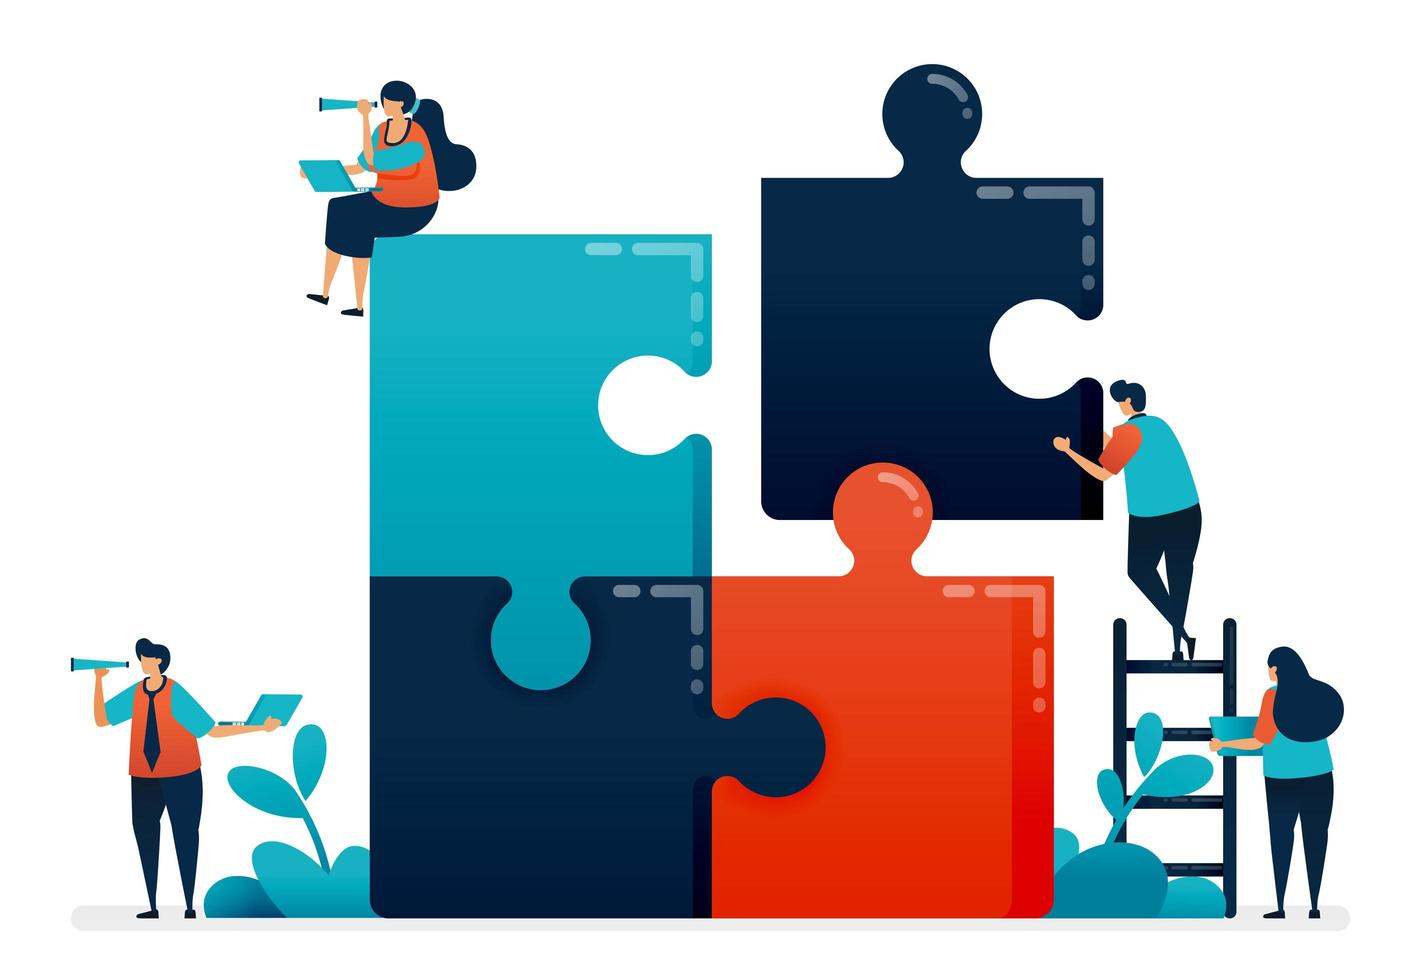 Practice collaboration and problem solving in teams by completing puzzle games, Solving problems in business and company, Cooperation and teamwork, Illustration of website, banner, software, poster vector